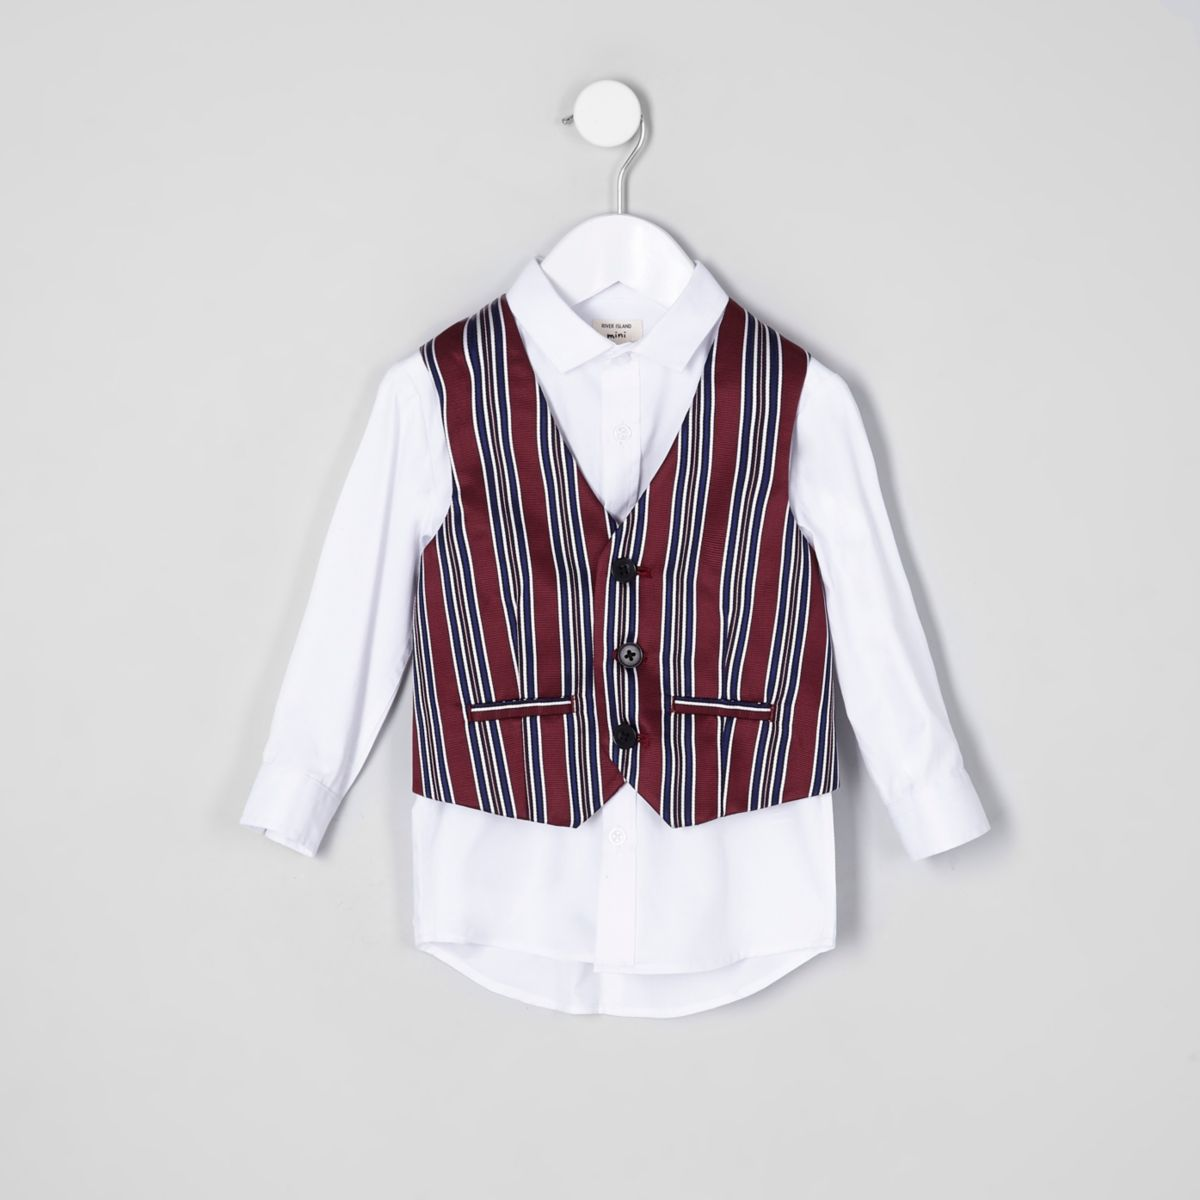 dfdefe3ef8b5 Mini boys red stripe waistcoat and shirt set - Mini Boys - Sale - boys